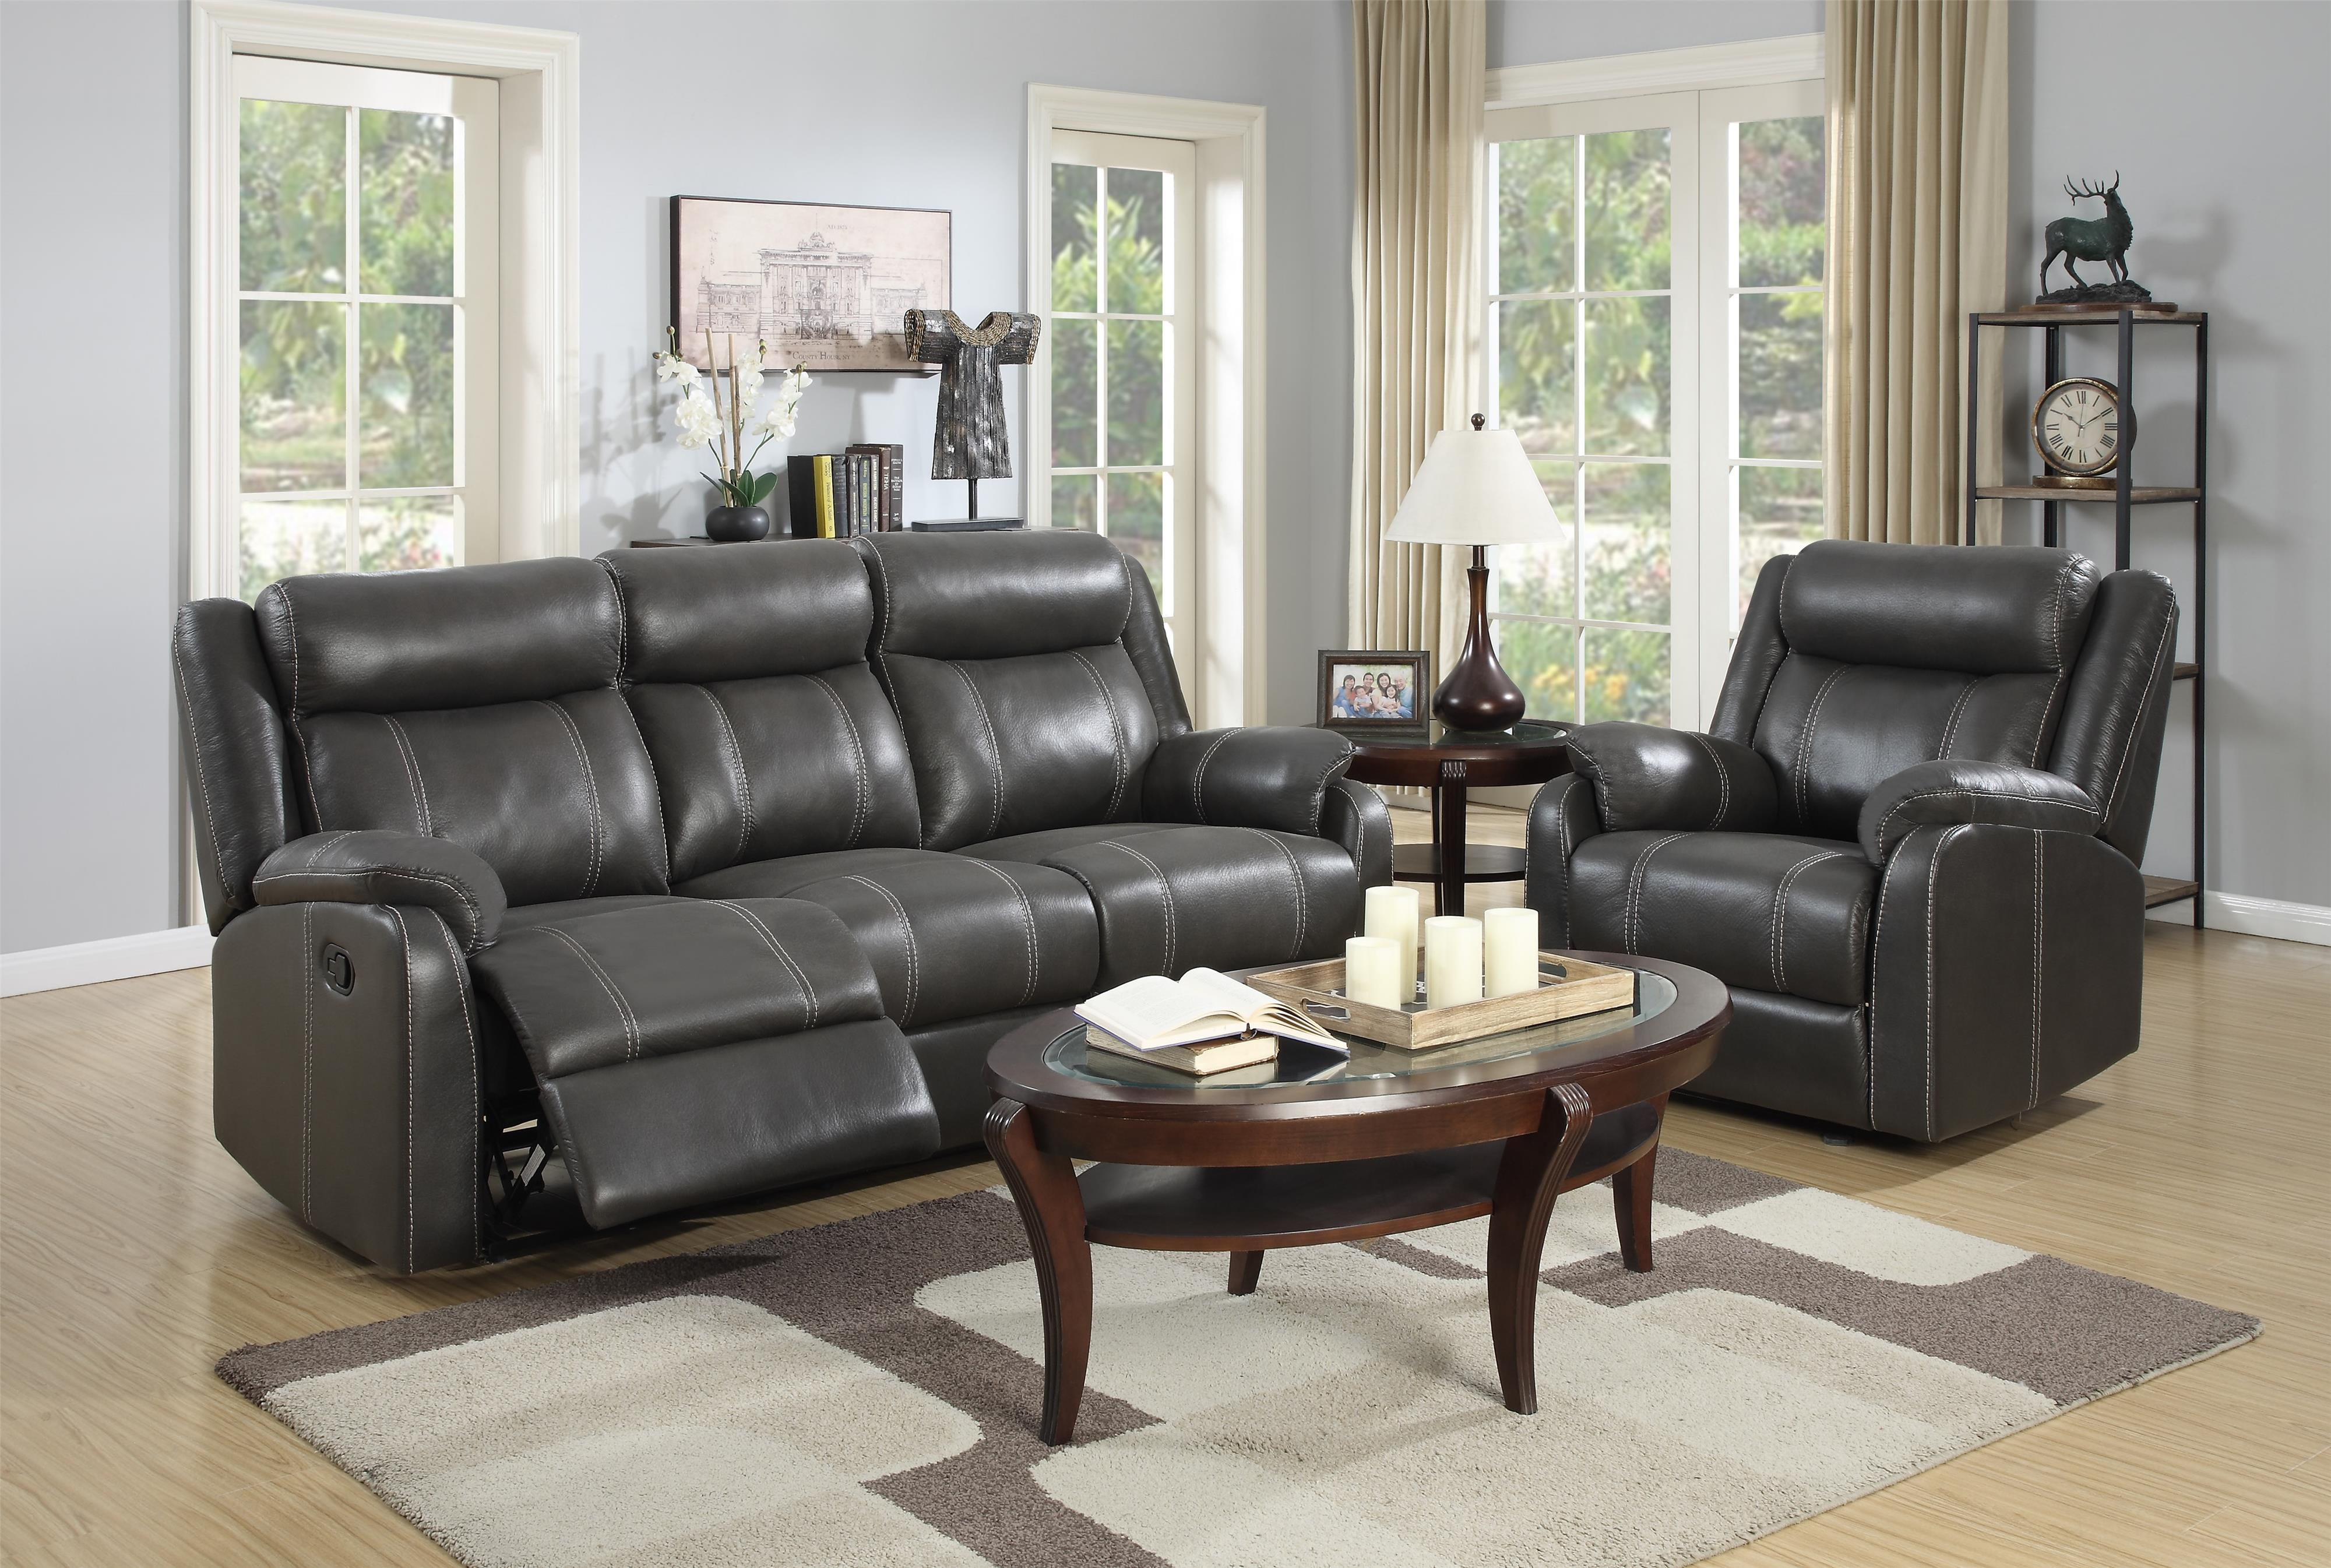 Klaussner International Domino-US Casual Reclining Sofa with Drop Down Table - Wayside Furniture - Reclining Sofa & Klaussner International Domino-US Casual Reclining Sofa with Drop ... islam-shia.org